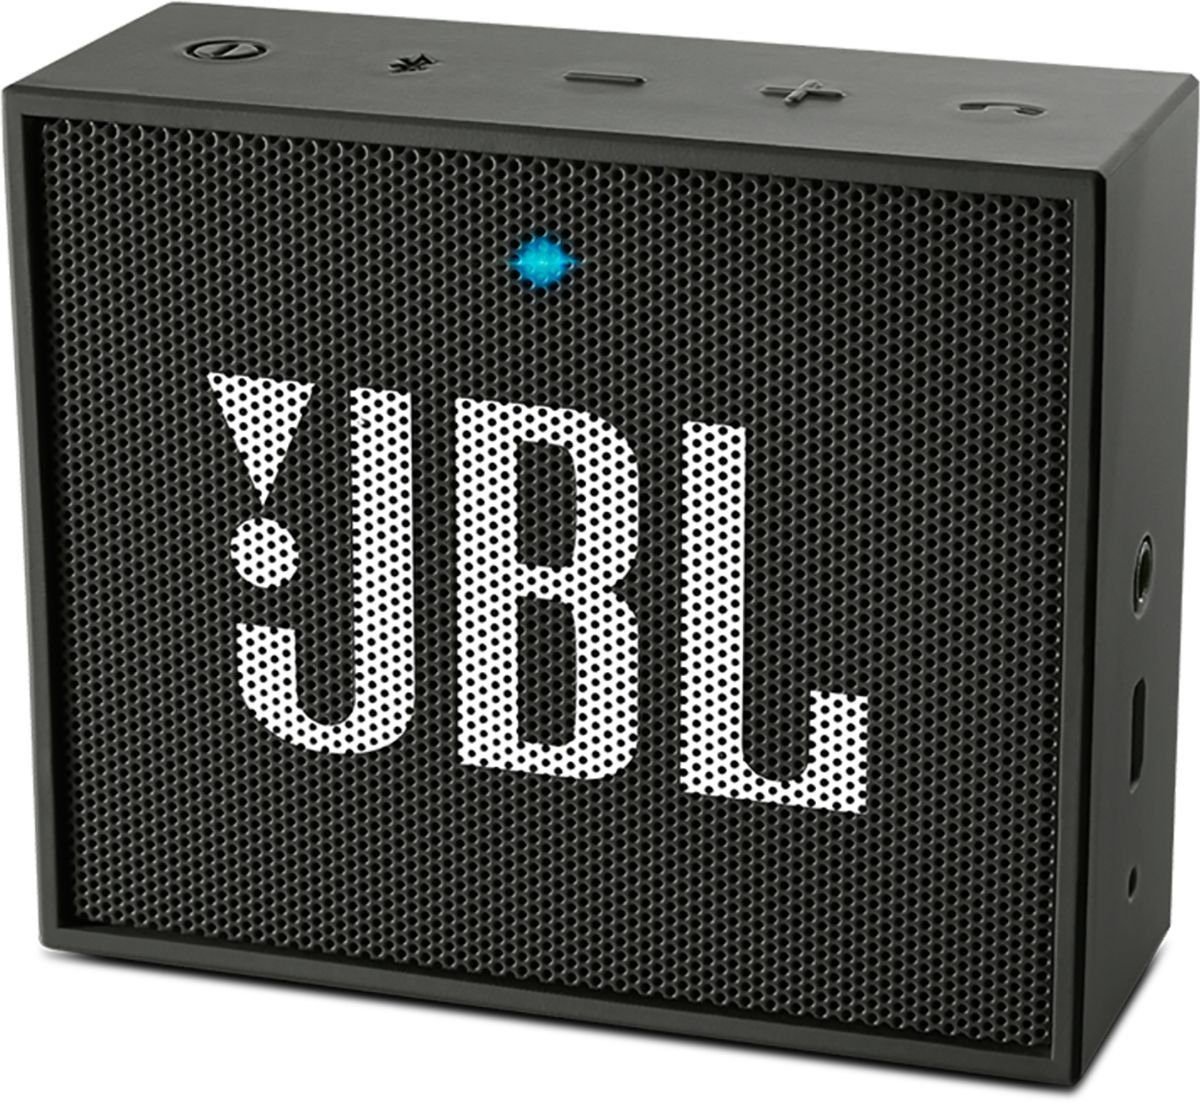 Jbl Go Bluetooth Speakers Price Buy Portable Wireless Simple Audio Amplifier 2800w Circuit Diagram Nonstopfree Electronic Online At Best Prices In India